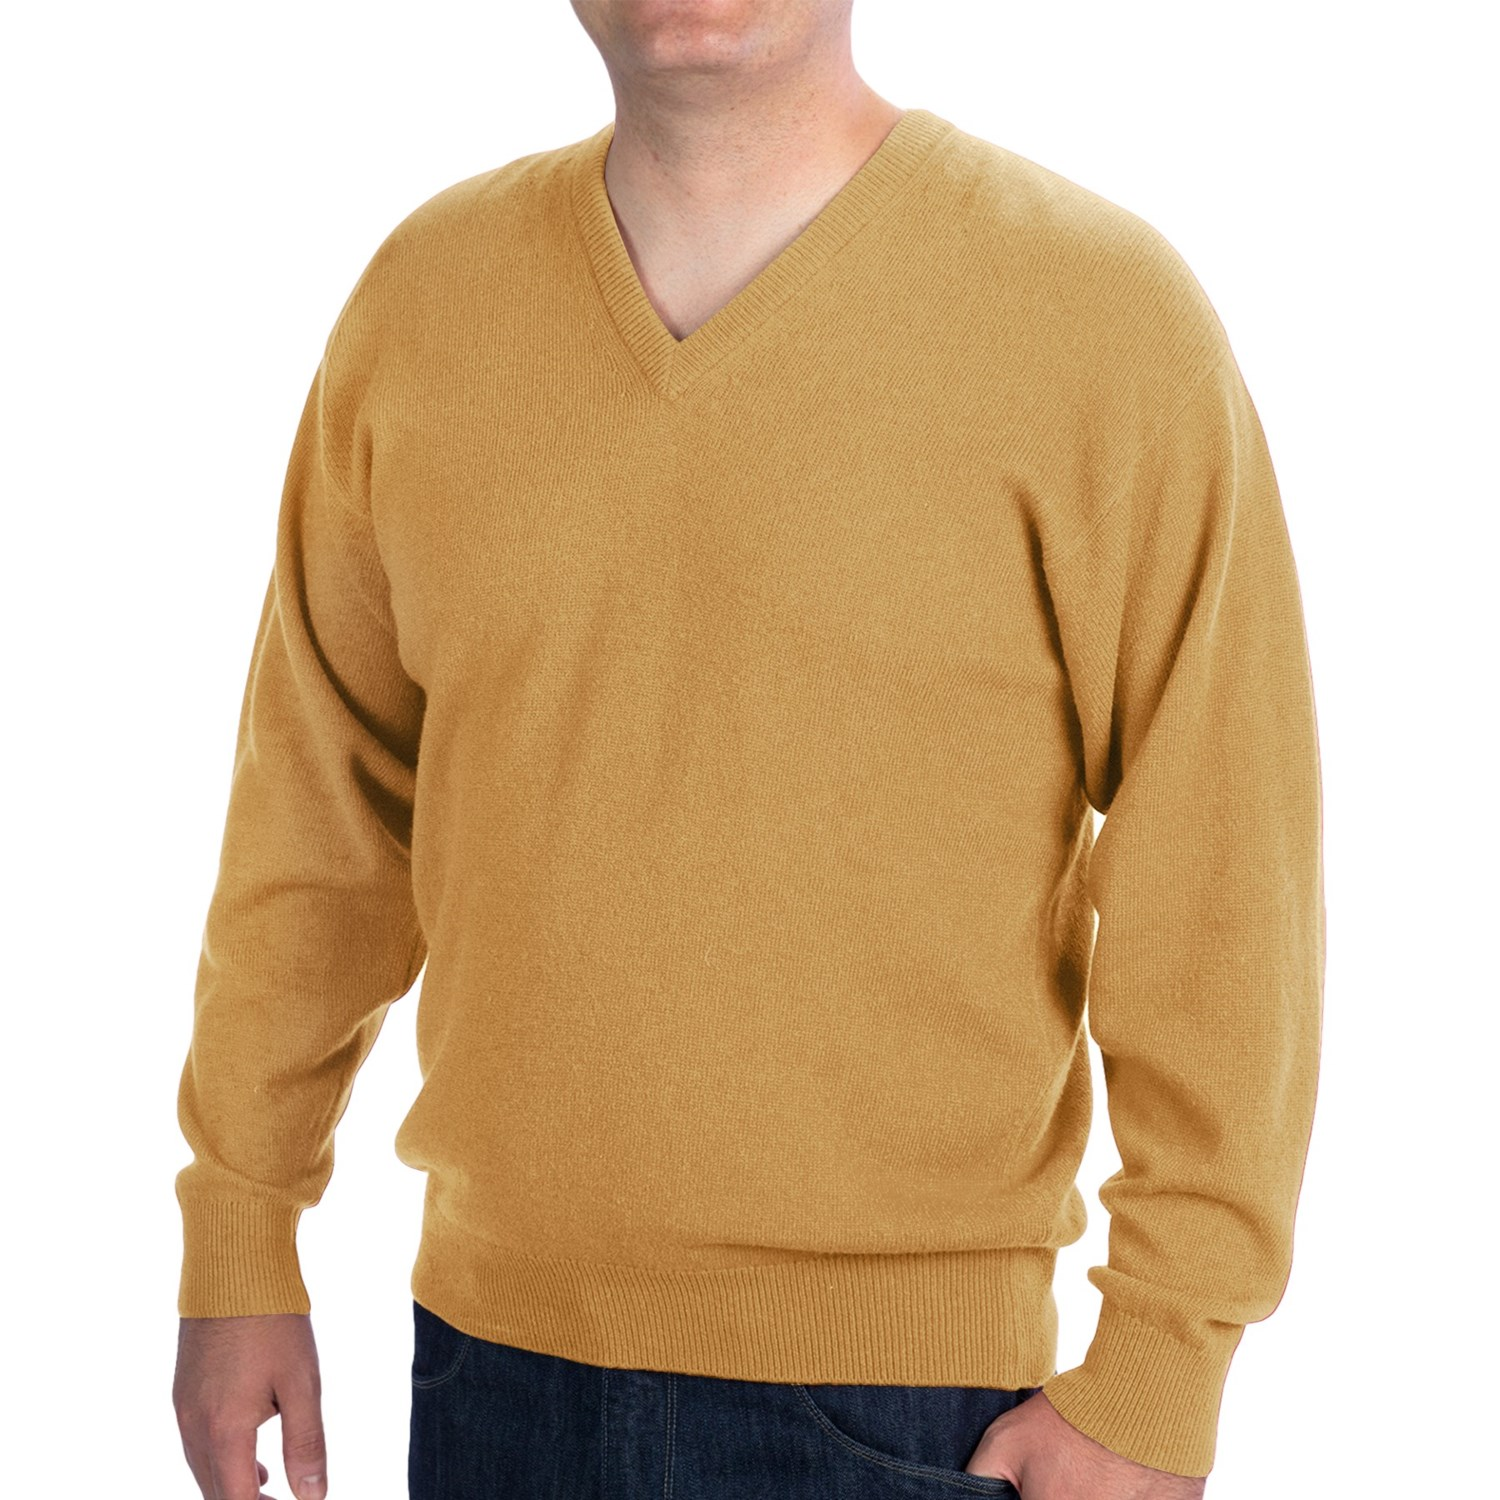 Sweater Vests For Men